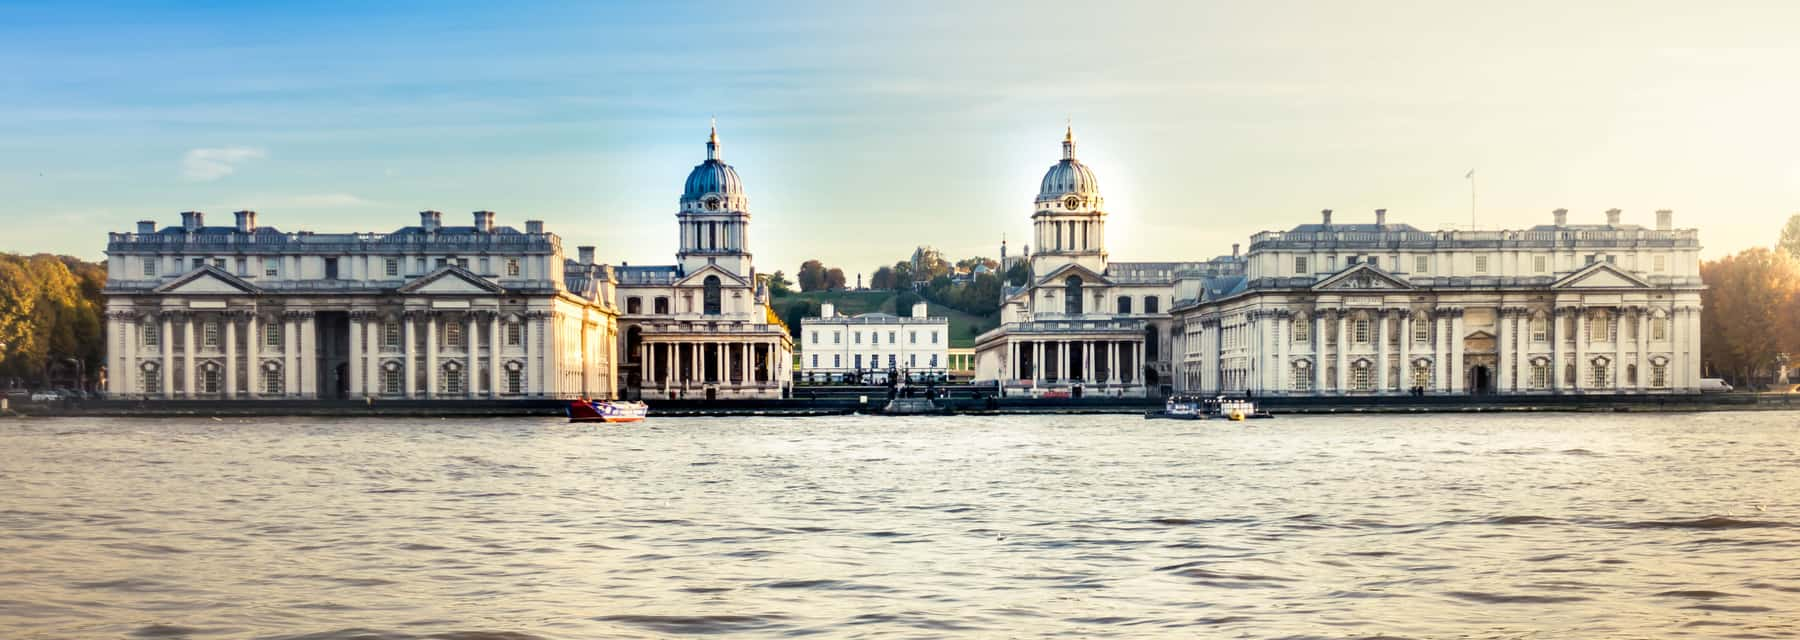 greenwich attractions tickets